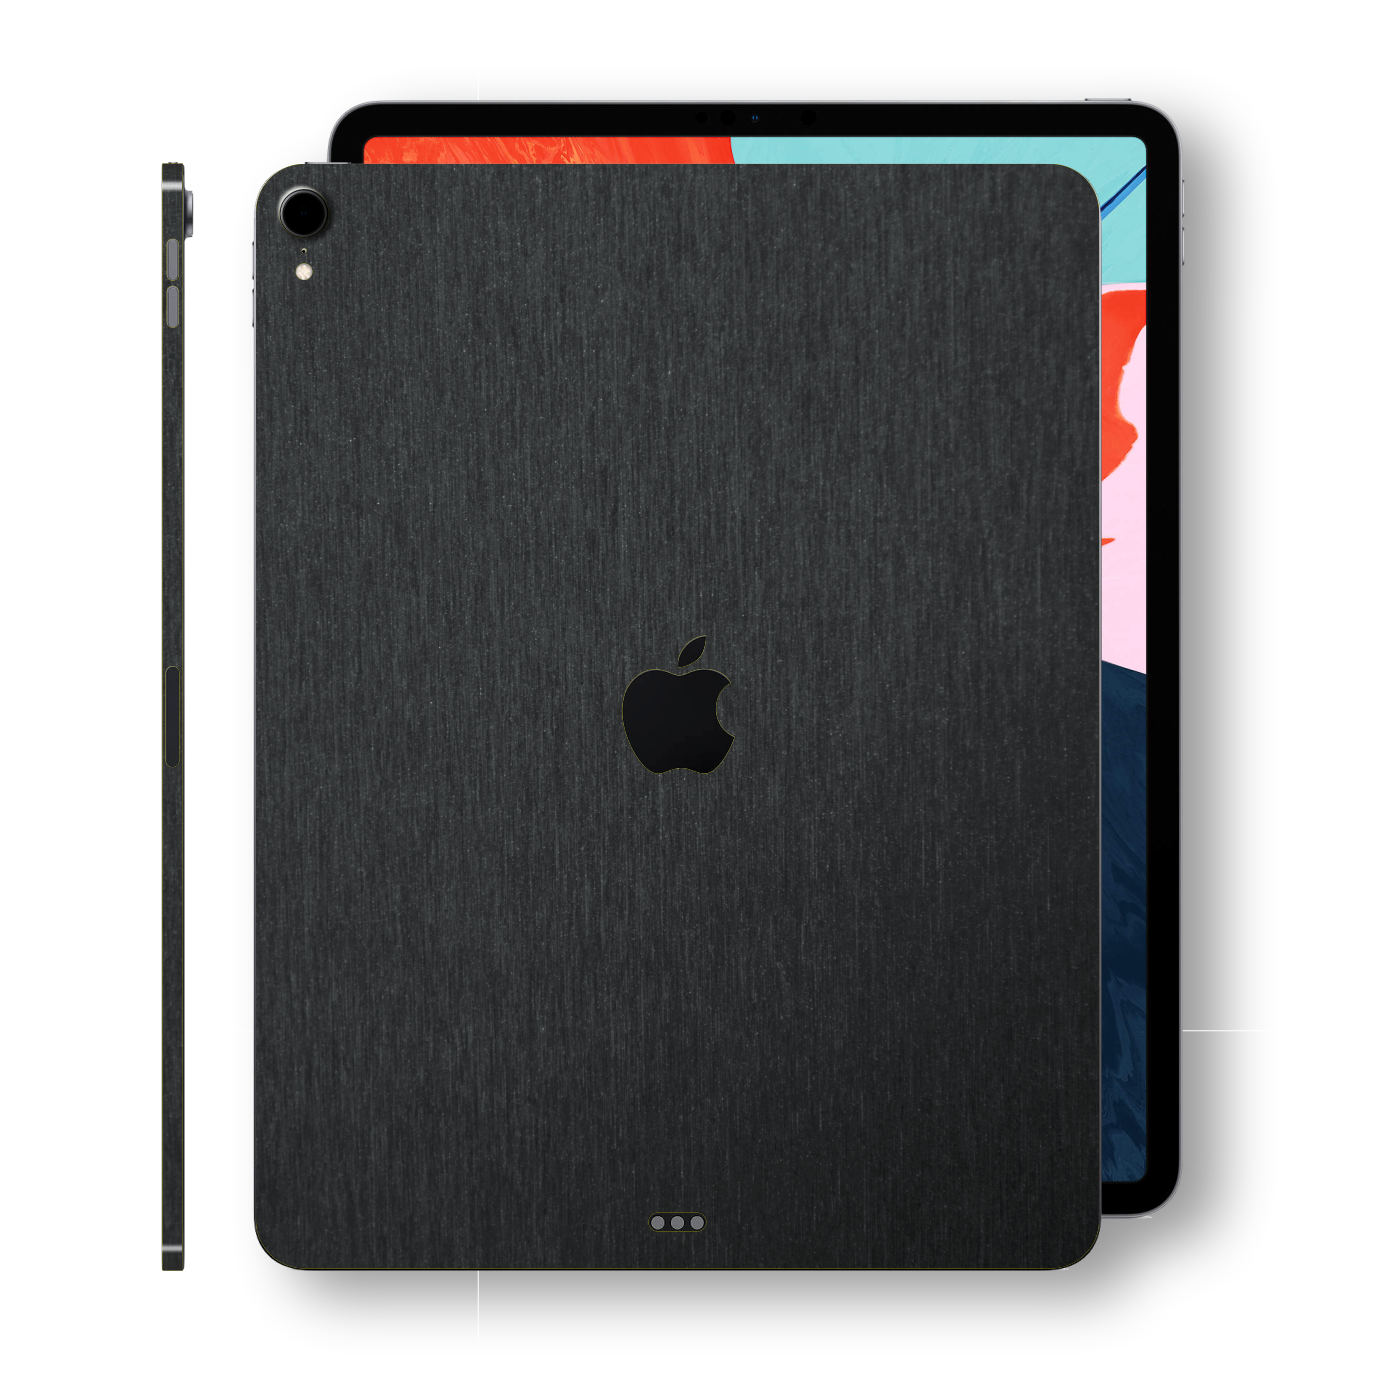 iPad PRO 12.9 inch 3rd Generation 2018 3M Brushed Black Metallic Skin Wrap Sticker Decal Cover Protector by EasySkinz